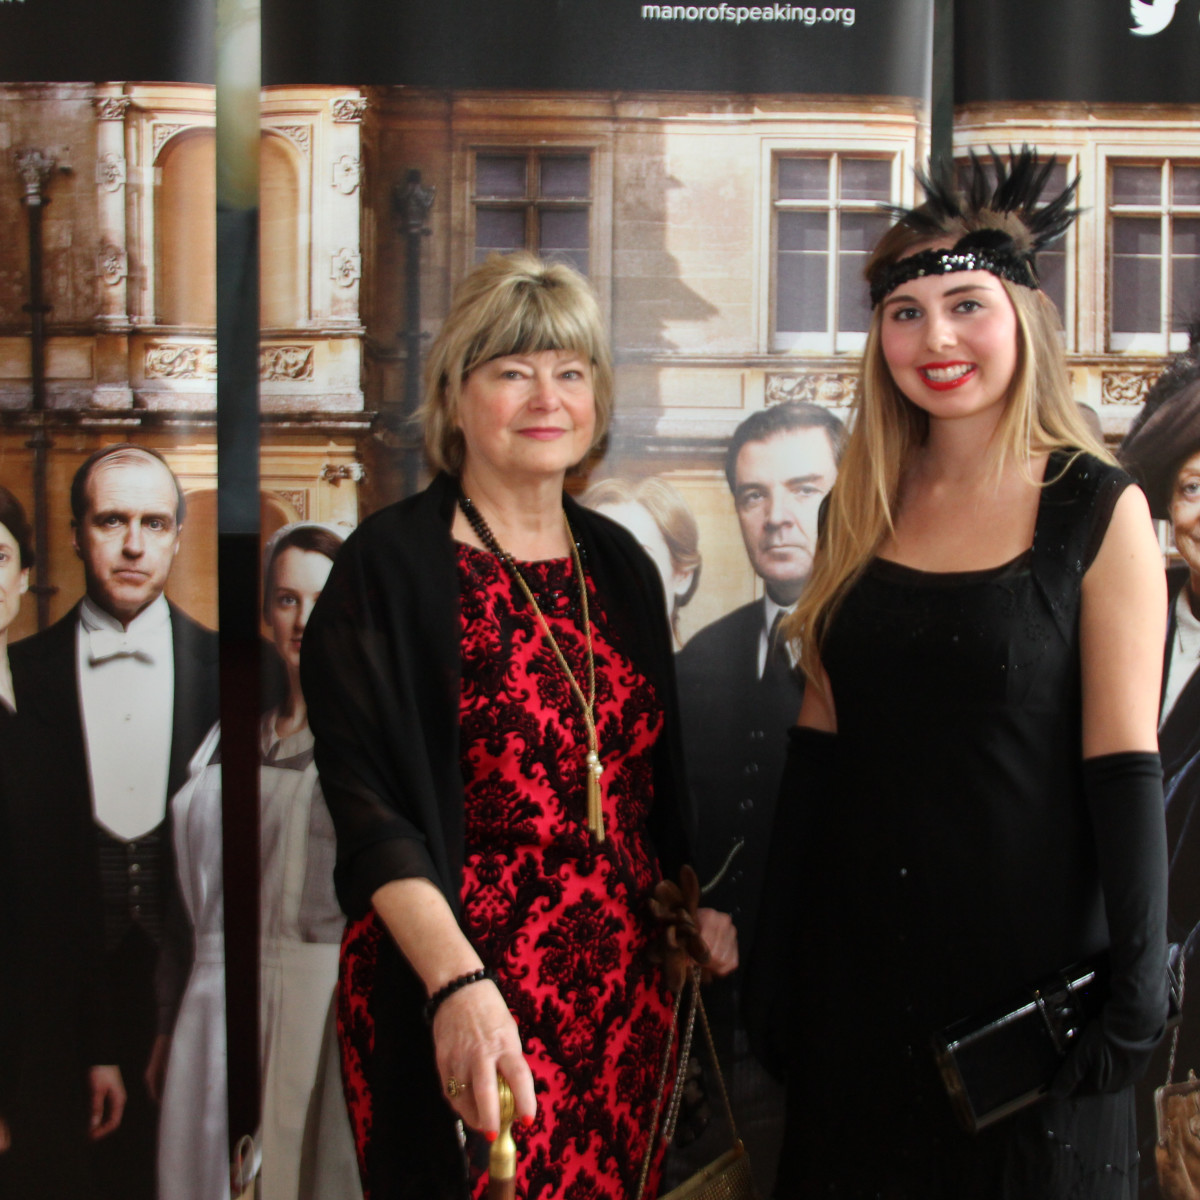 Christine and Kaitlyn Cargol, first place costume contest winners at the noon screening of the Downton Abbey season 6 premiere in The Woodlands